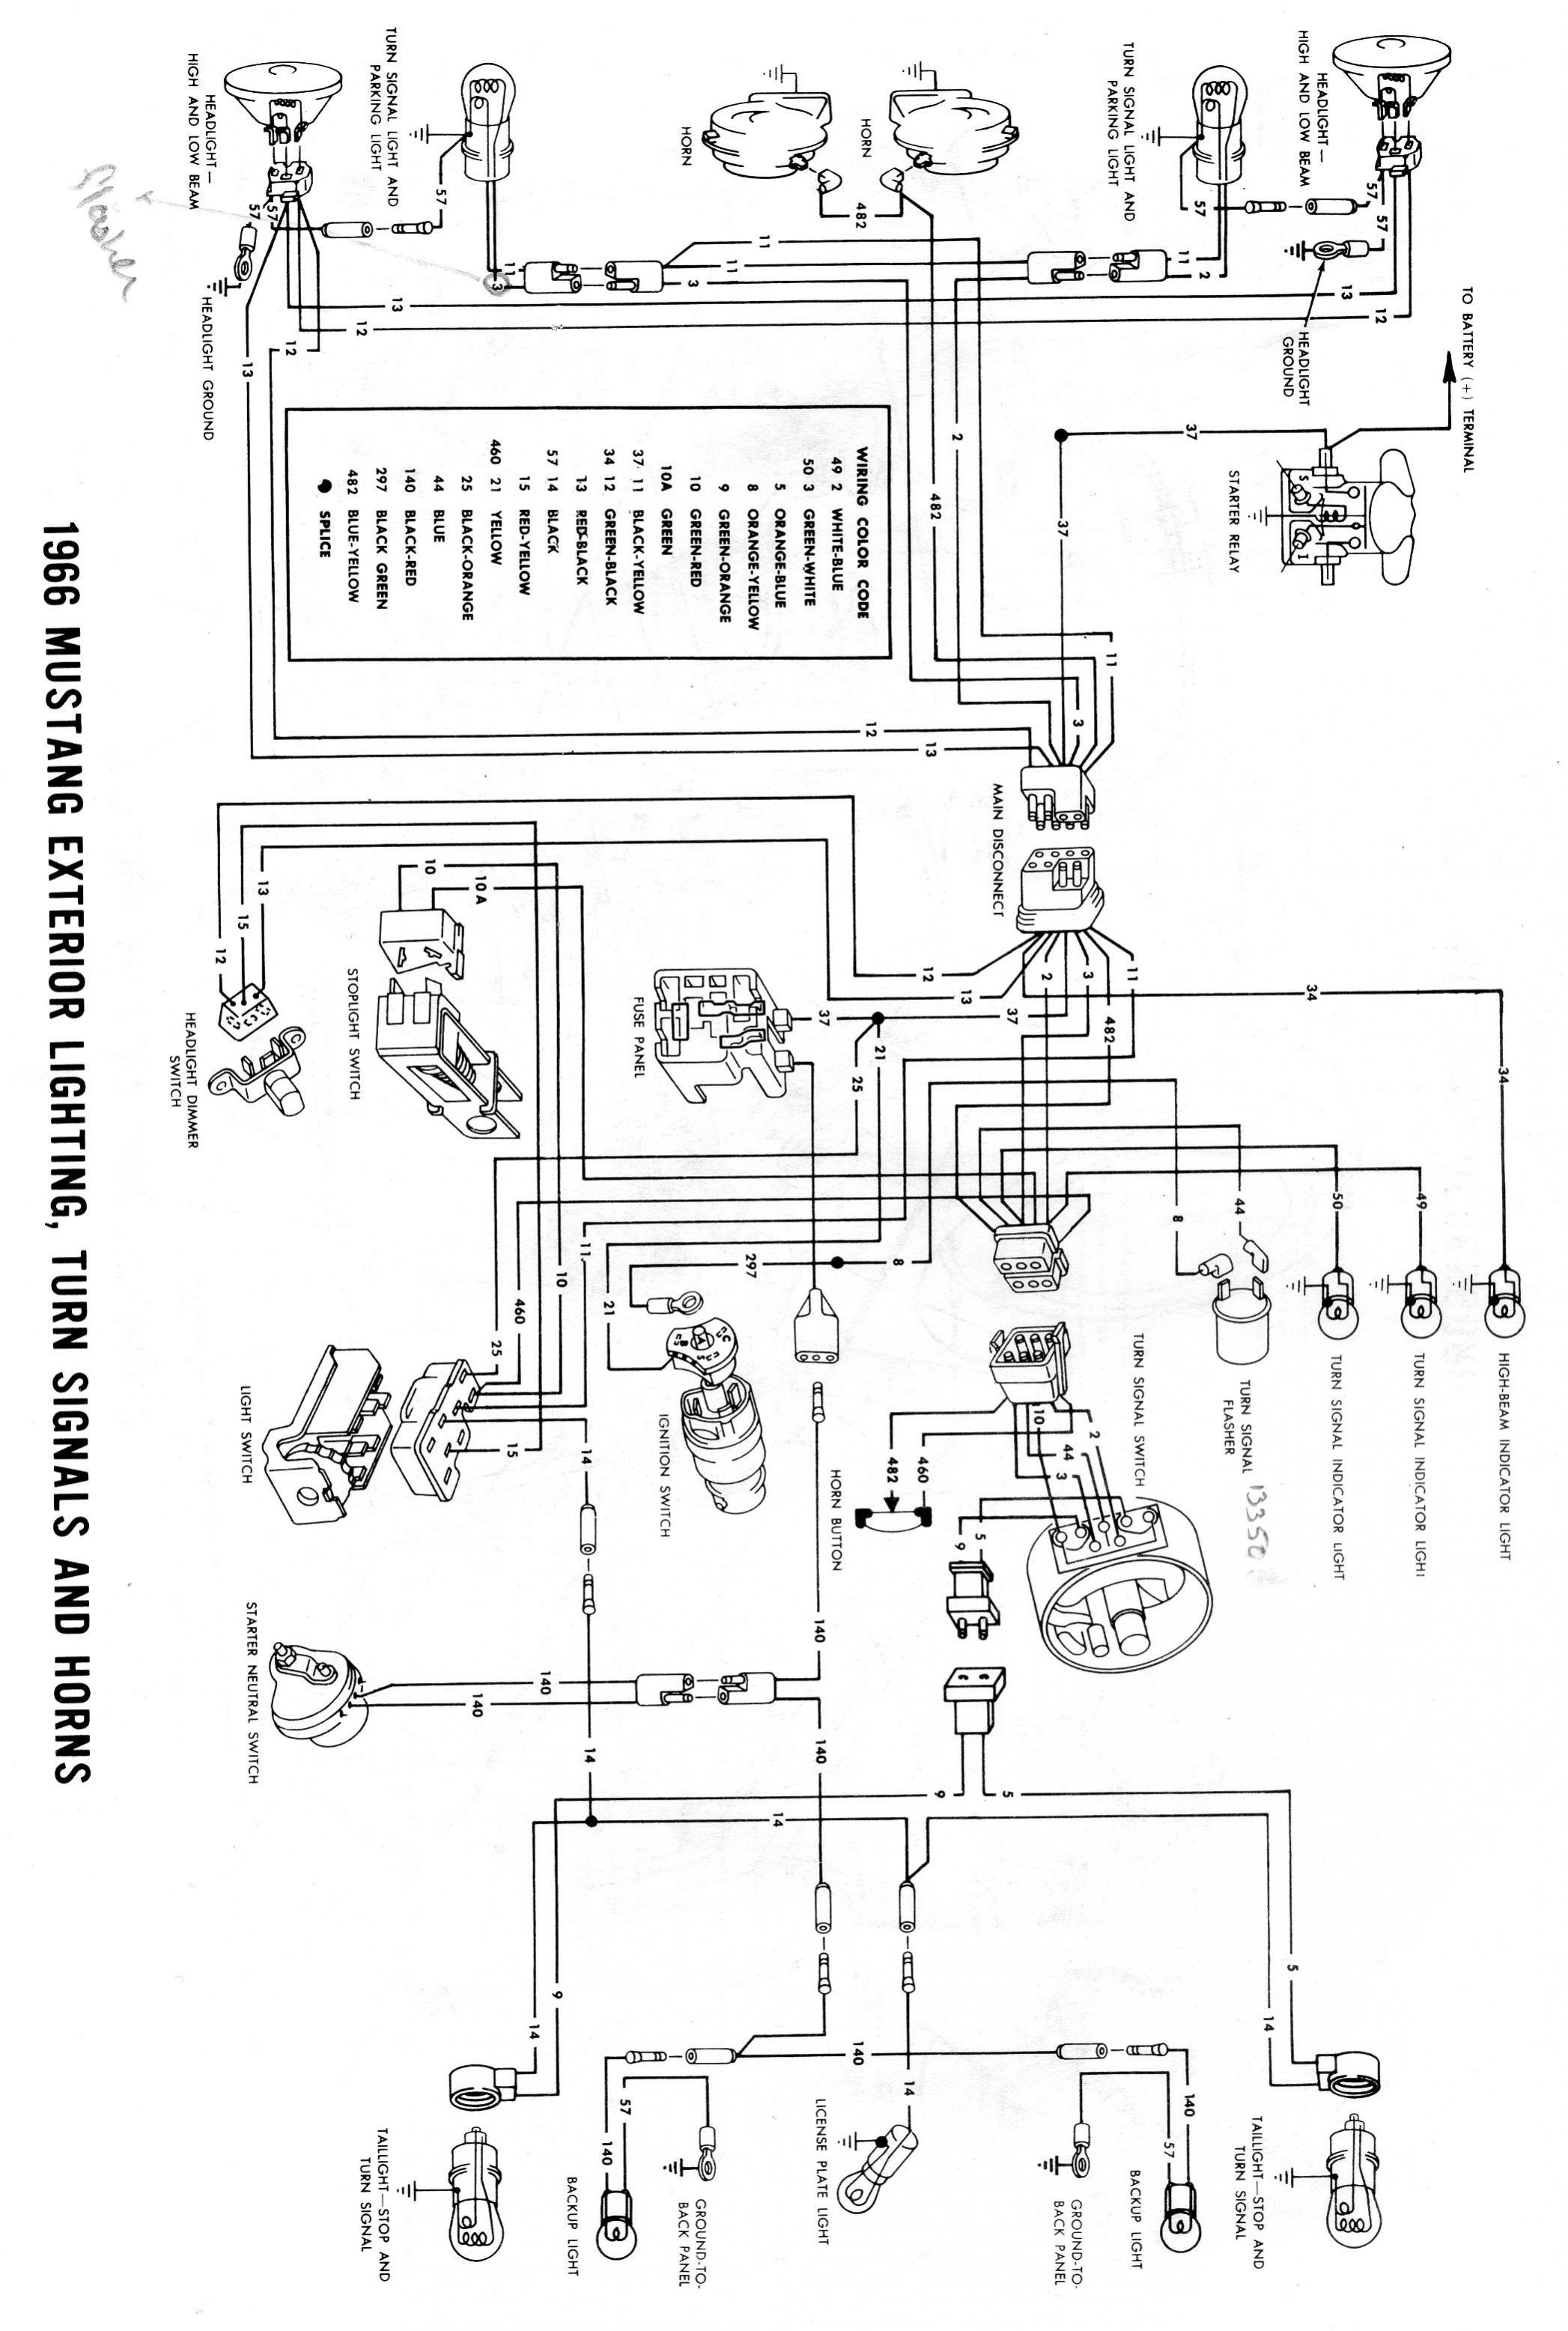 69 Beetle Turn Signal Wiring Schematic